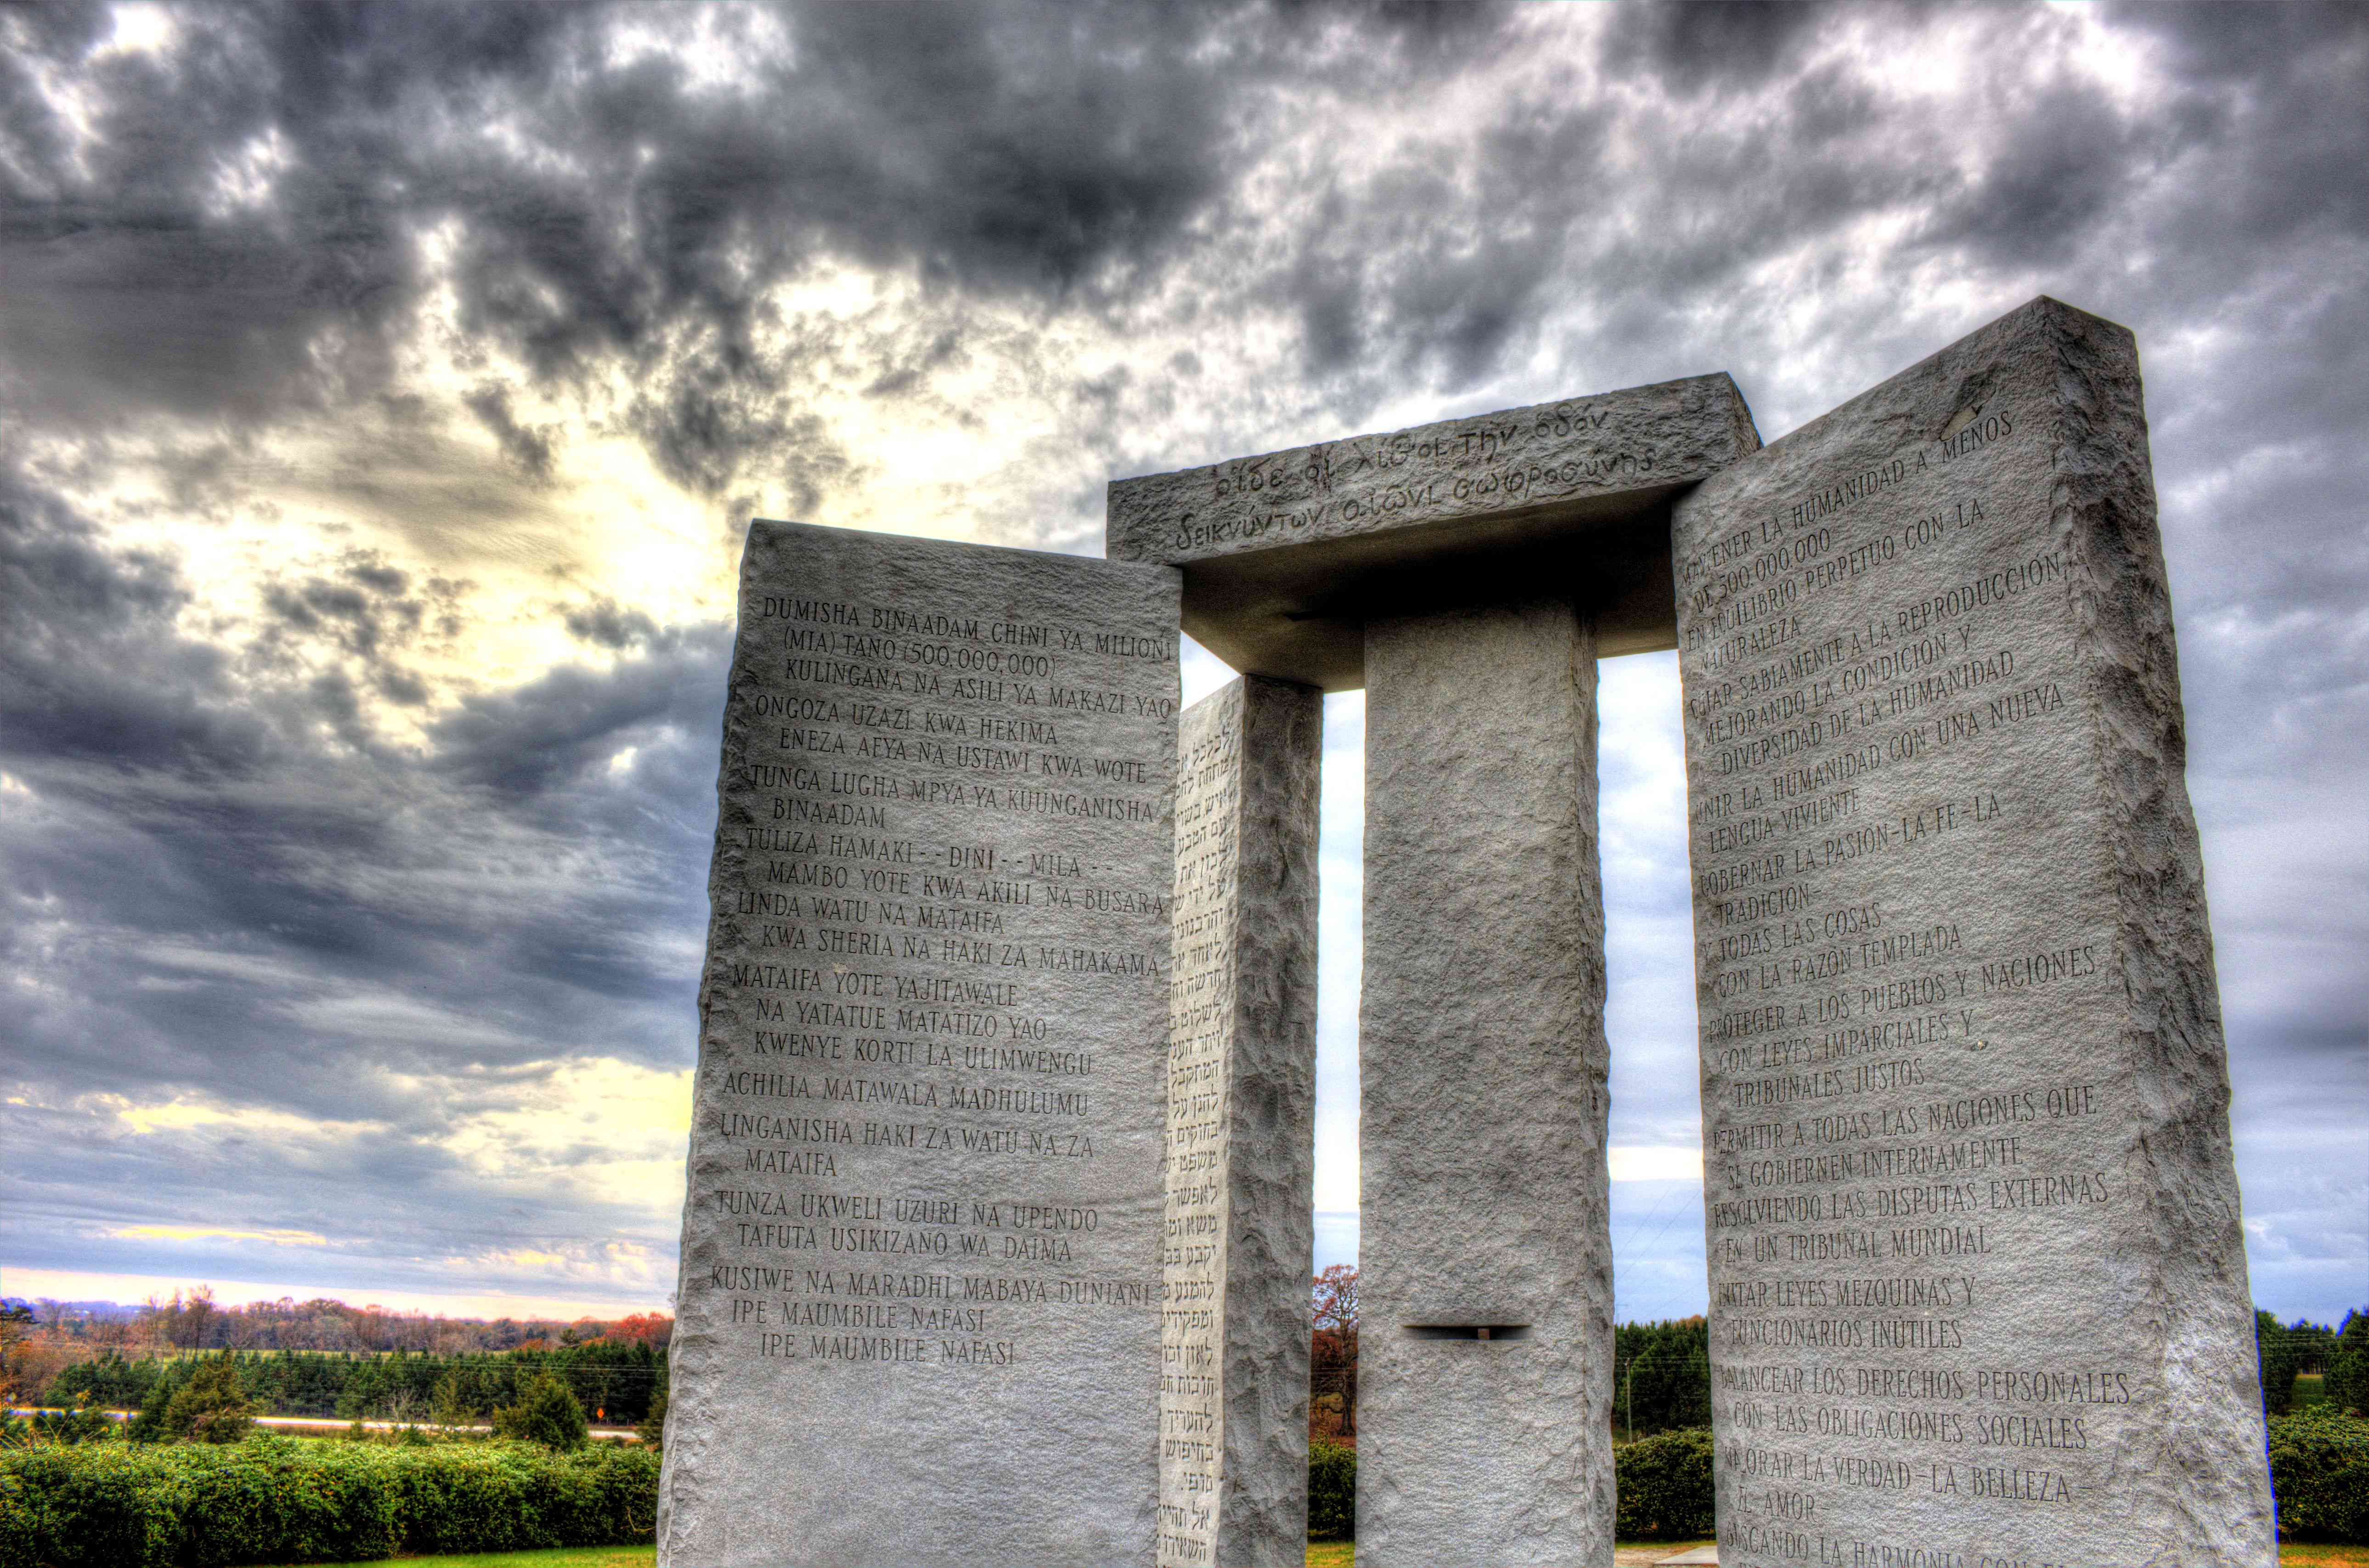 Tall granite monuments with writing inscribed at sunset